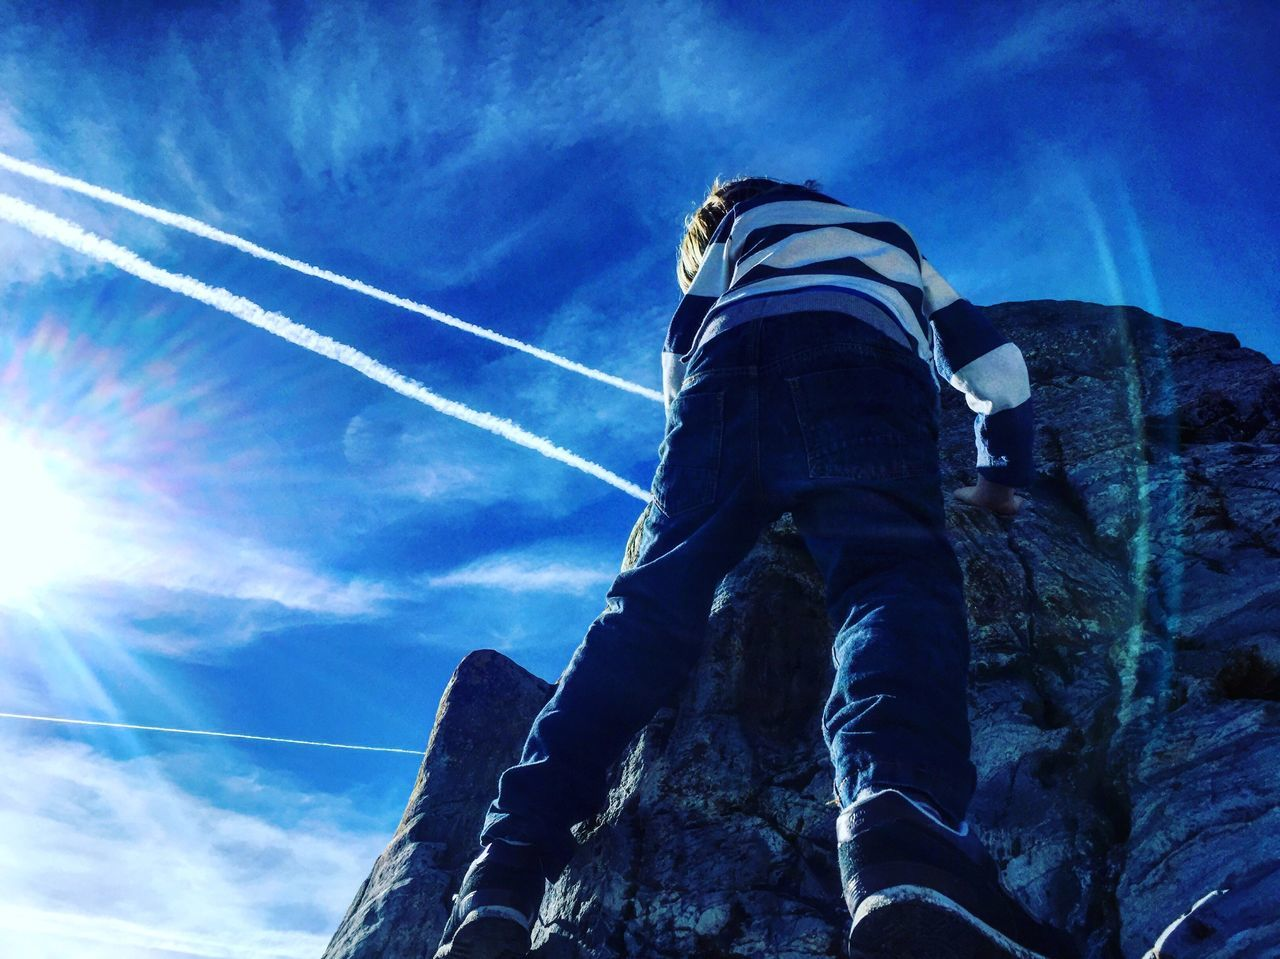 low angle view, sky, blue, day, outdoors, cloud - sky, nature, sunlight, no people, vapor trail, beauty in nature